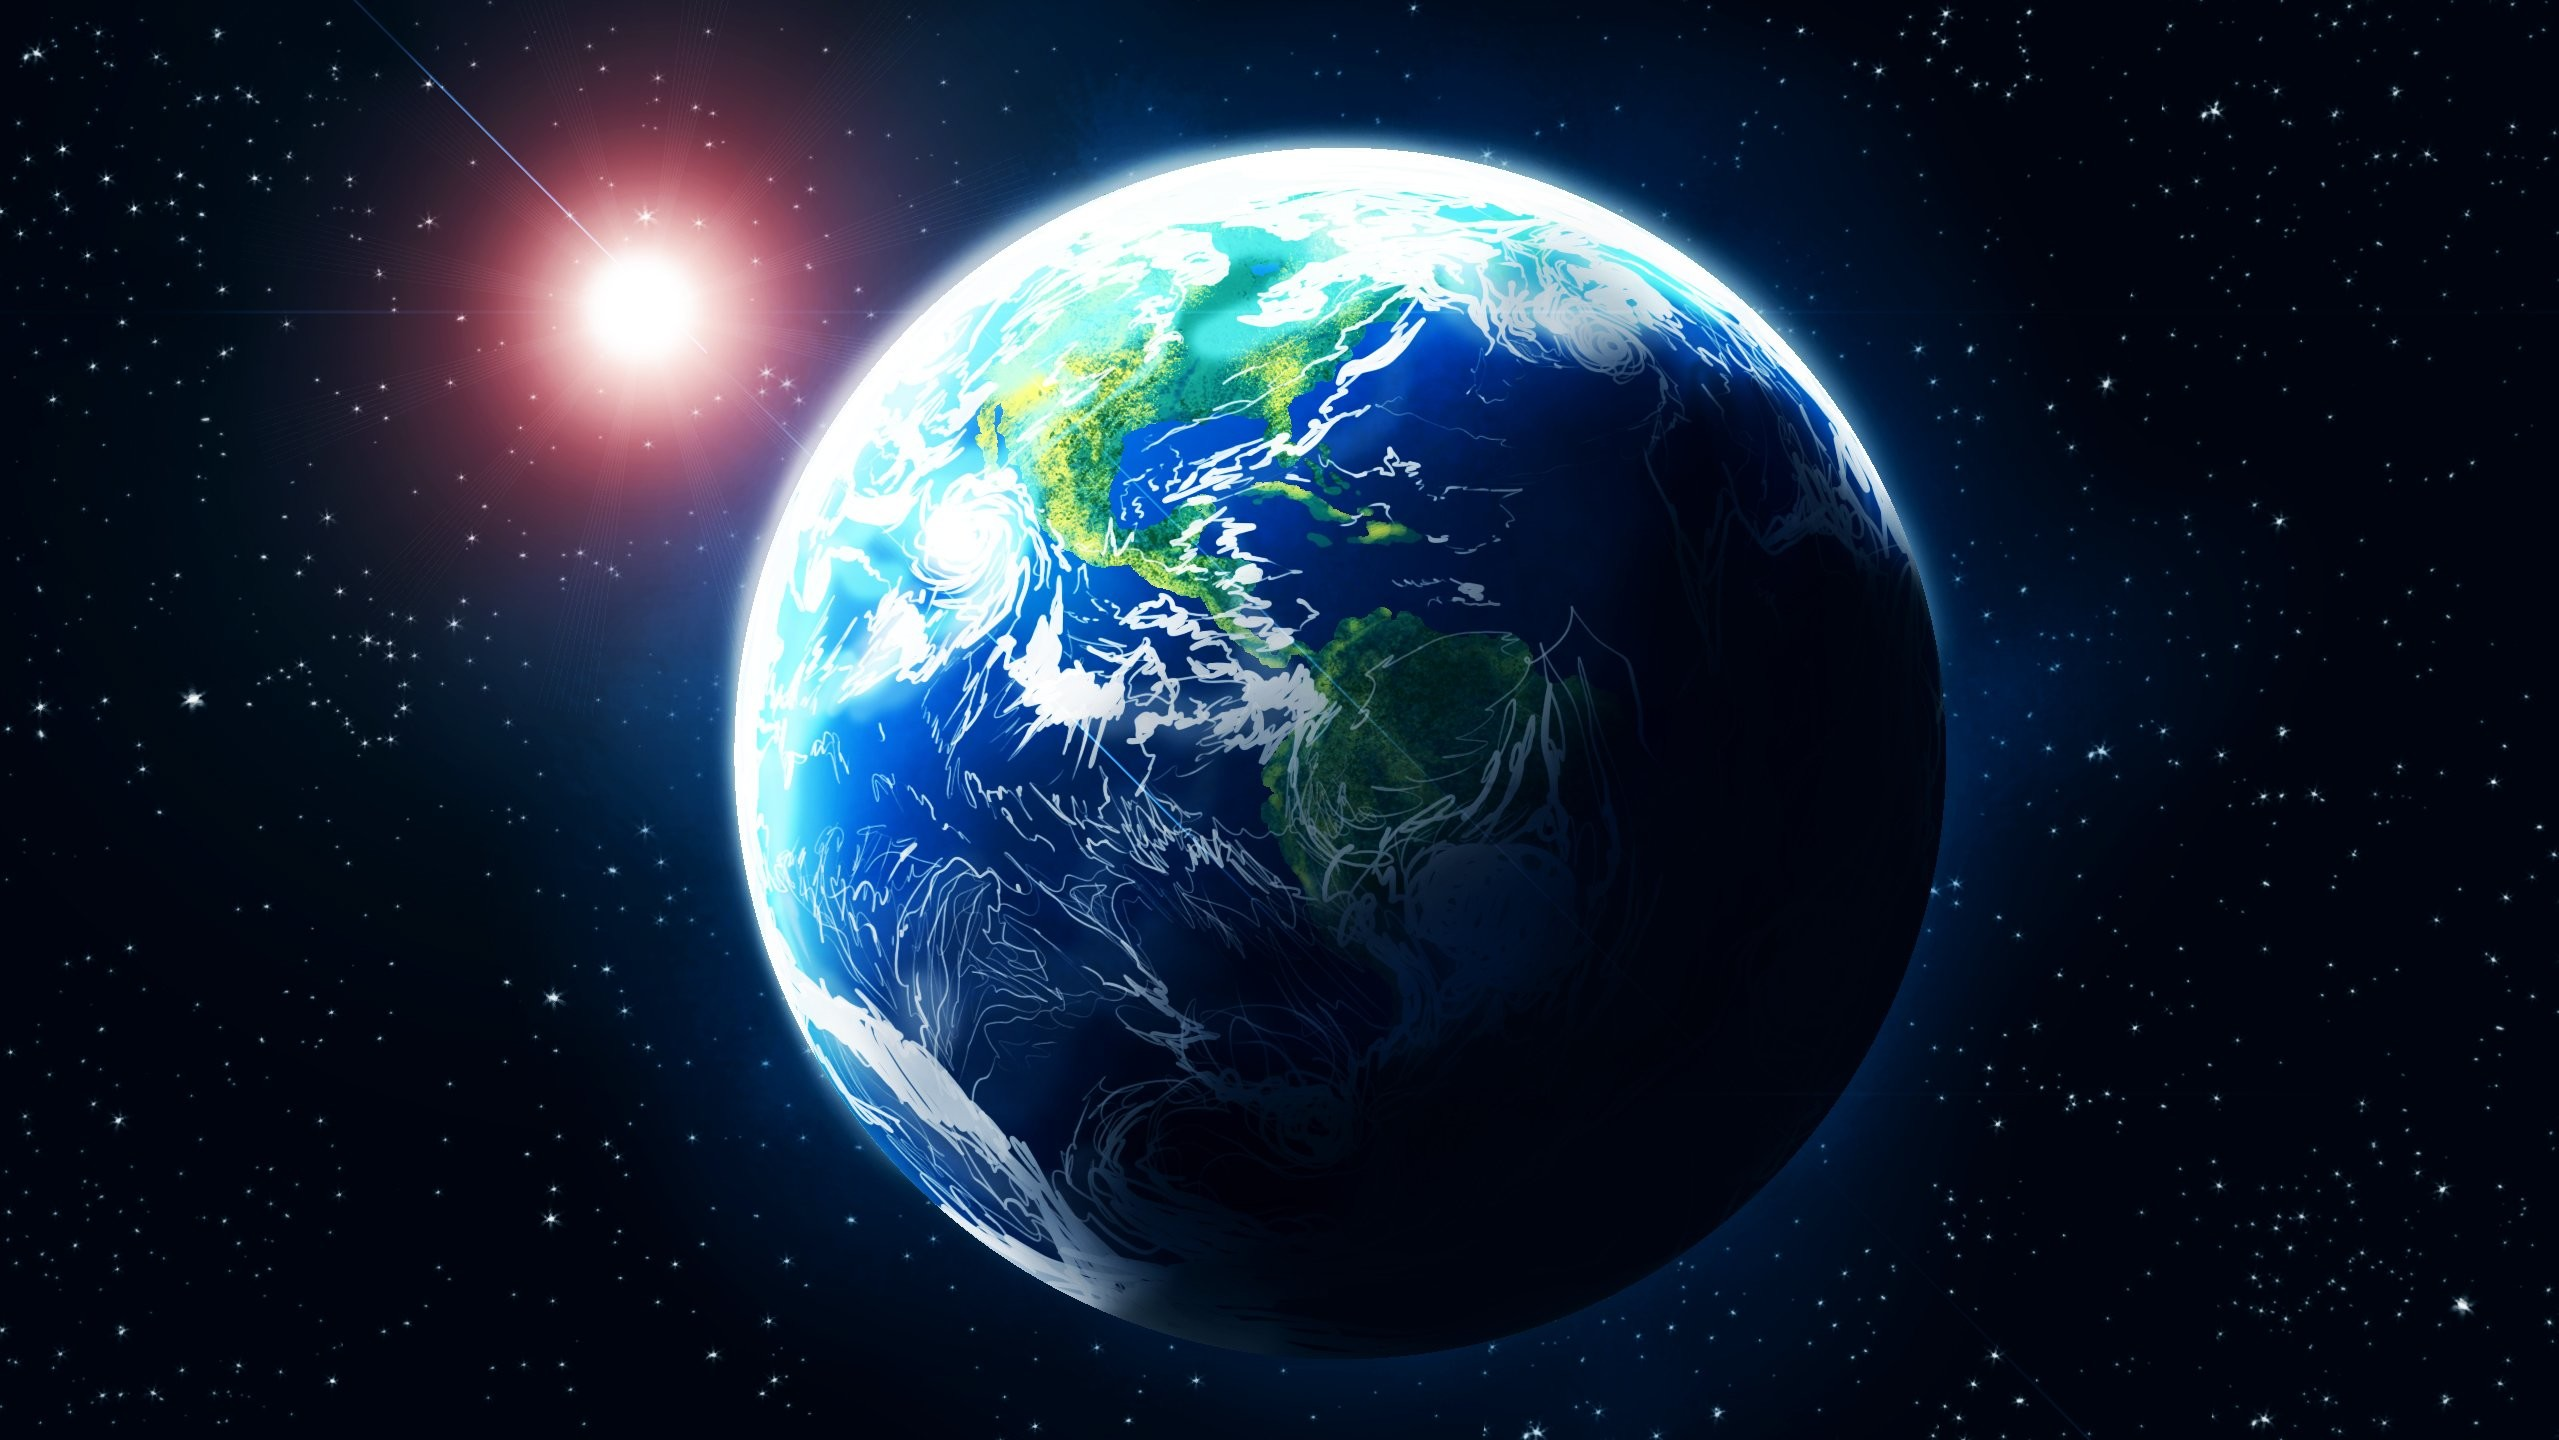 Cool Earth Backgrounds 83 Images